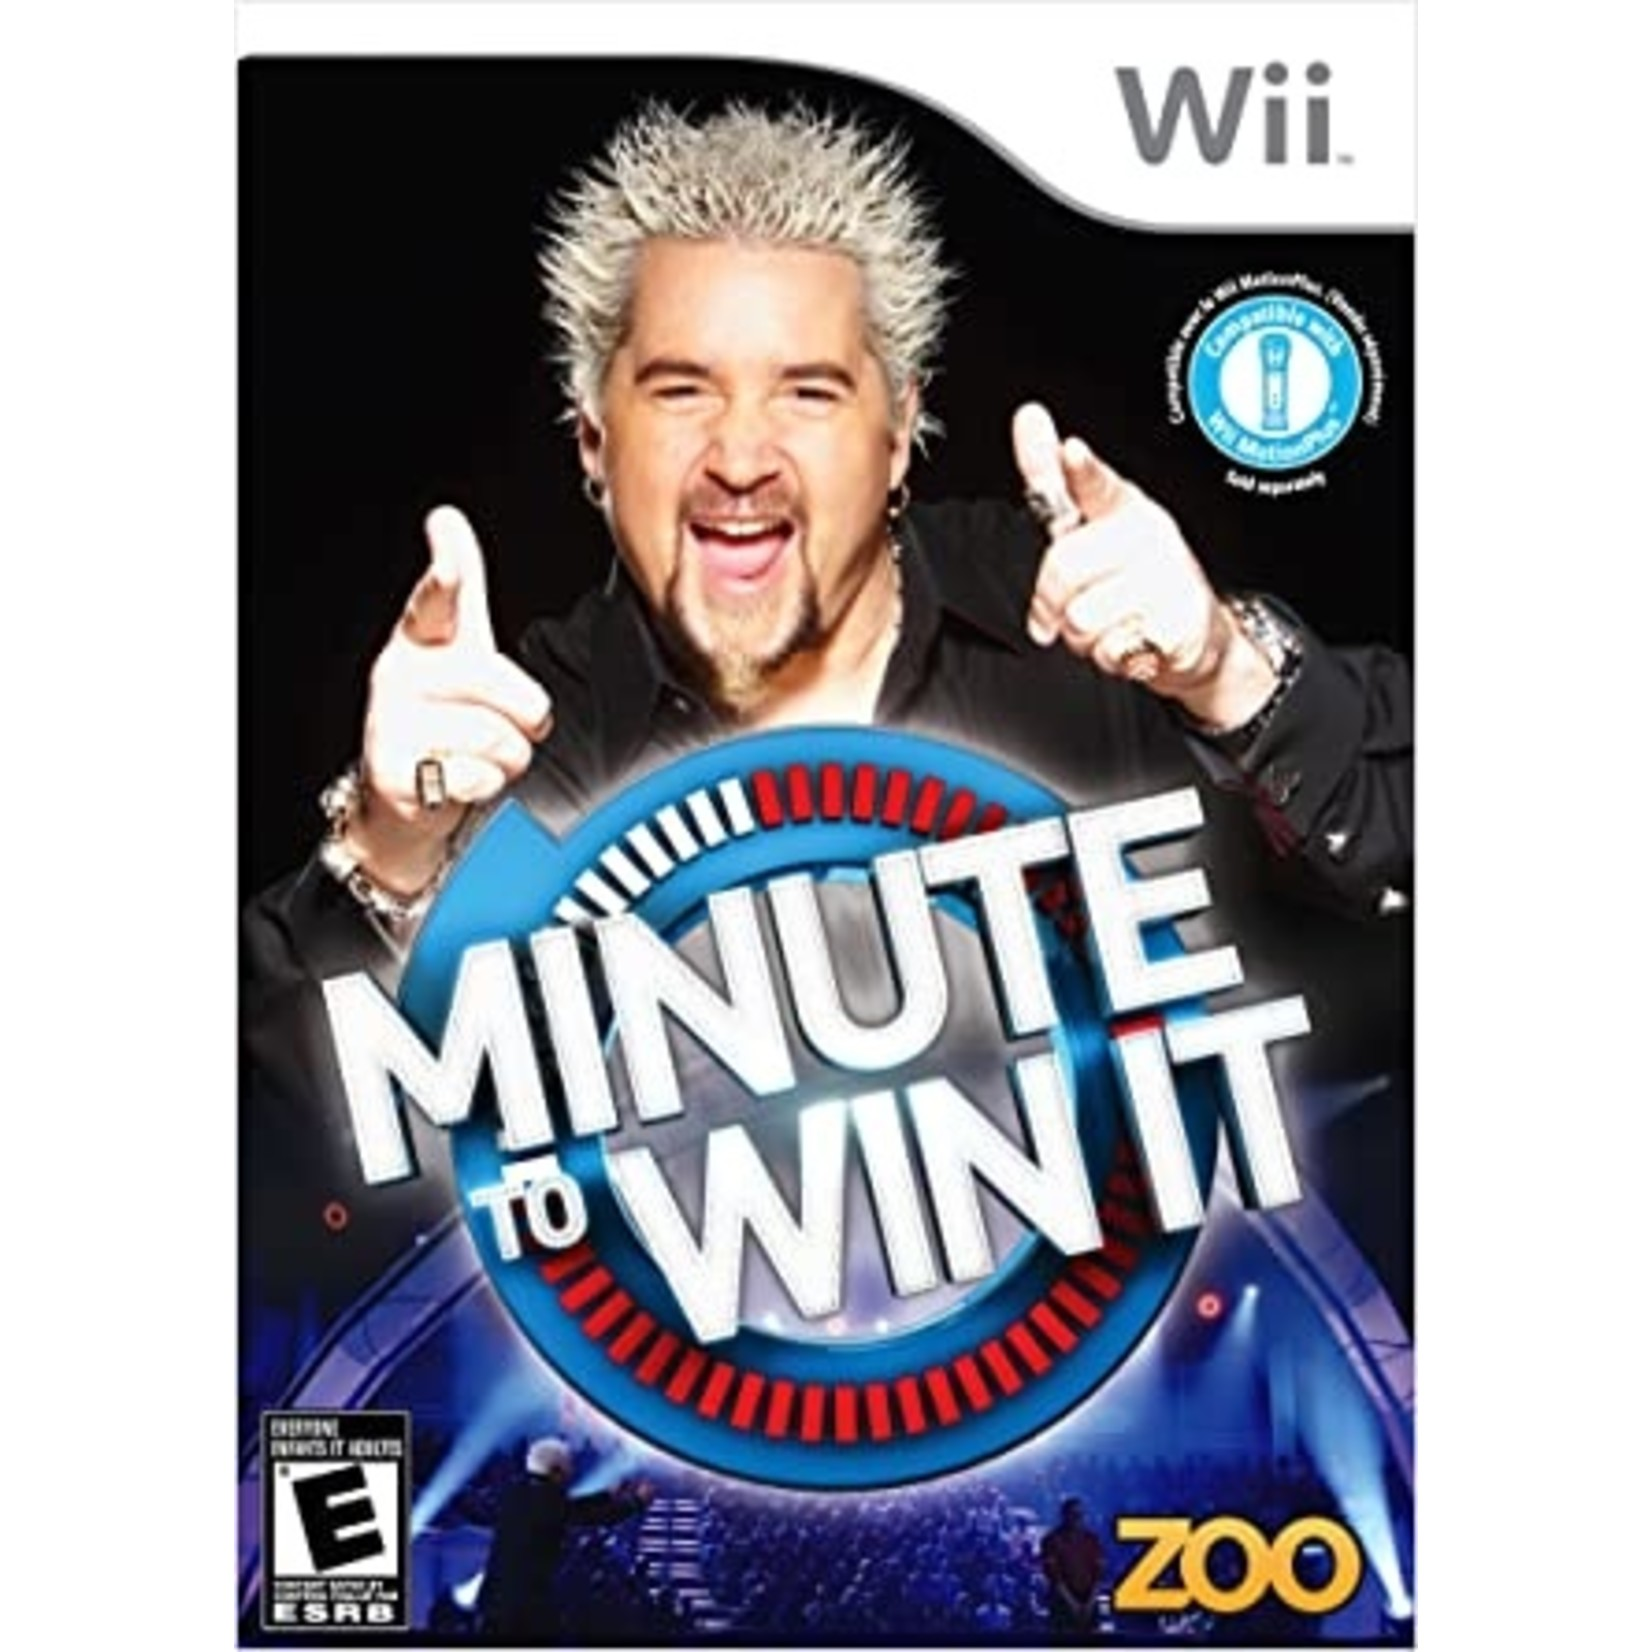 WIIUSD-MINUTE TO WIN IT